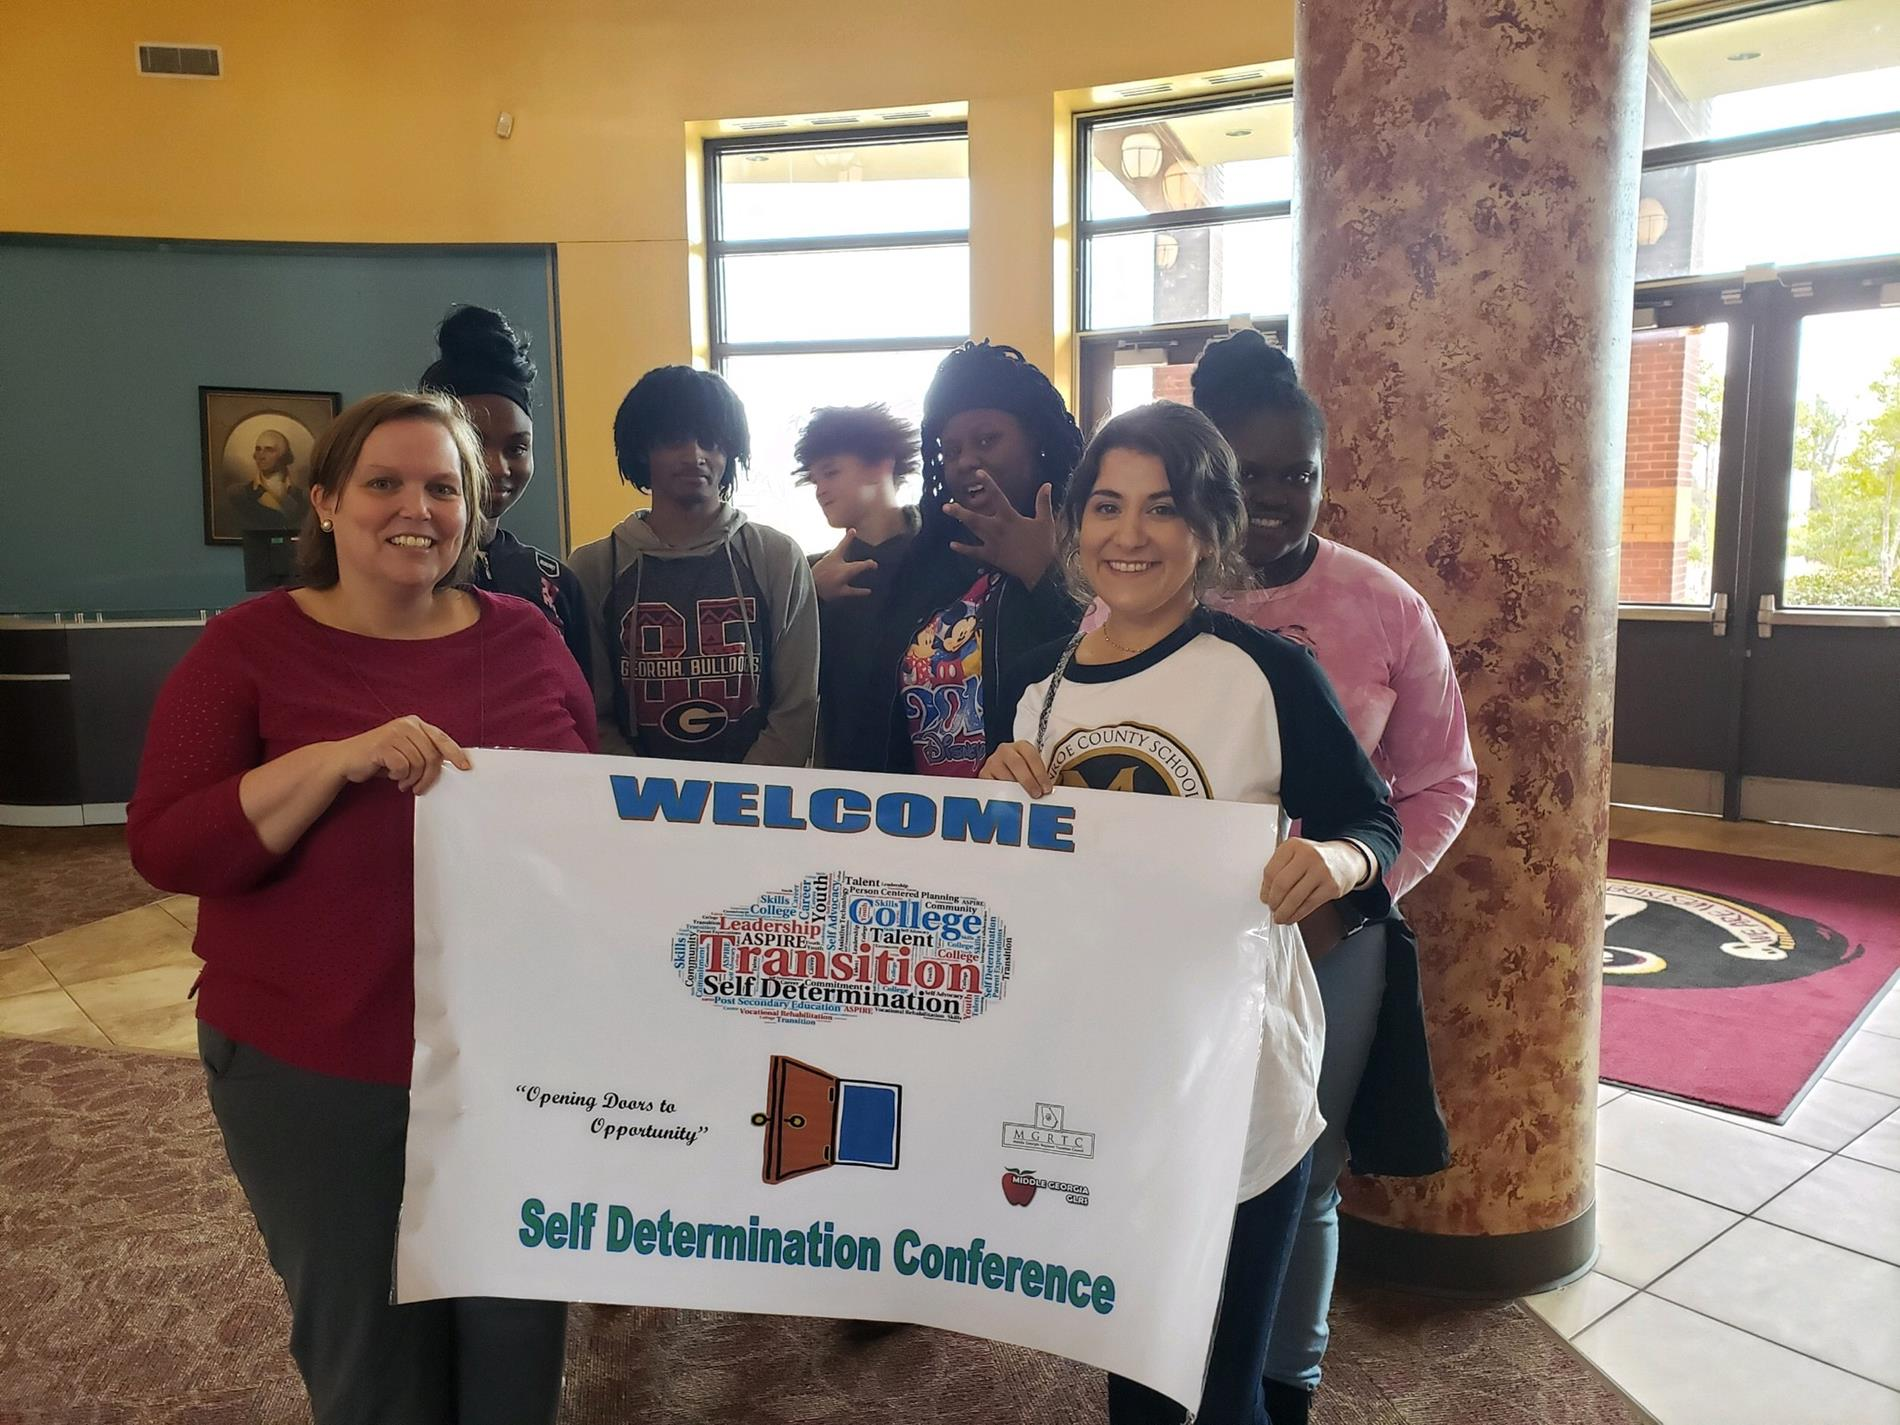 MCAC students attended Self Determination Conference